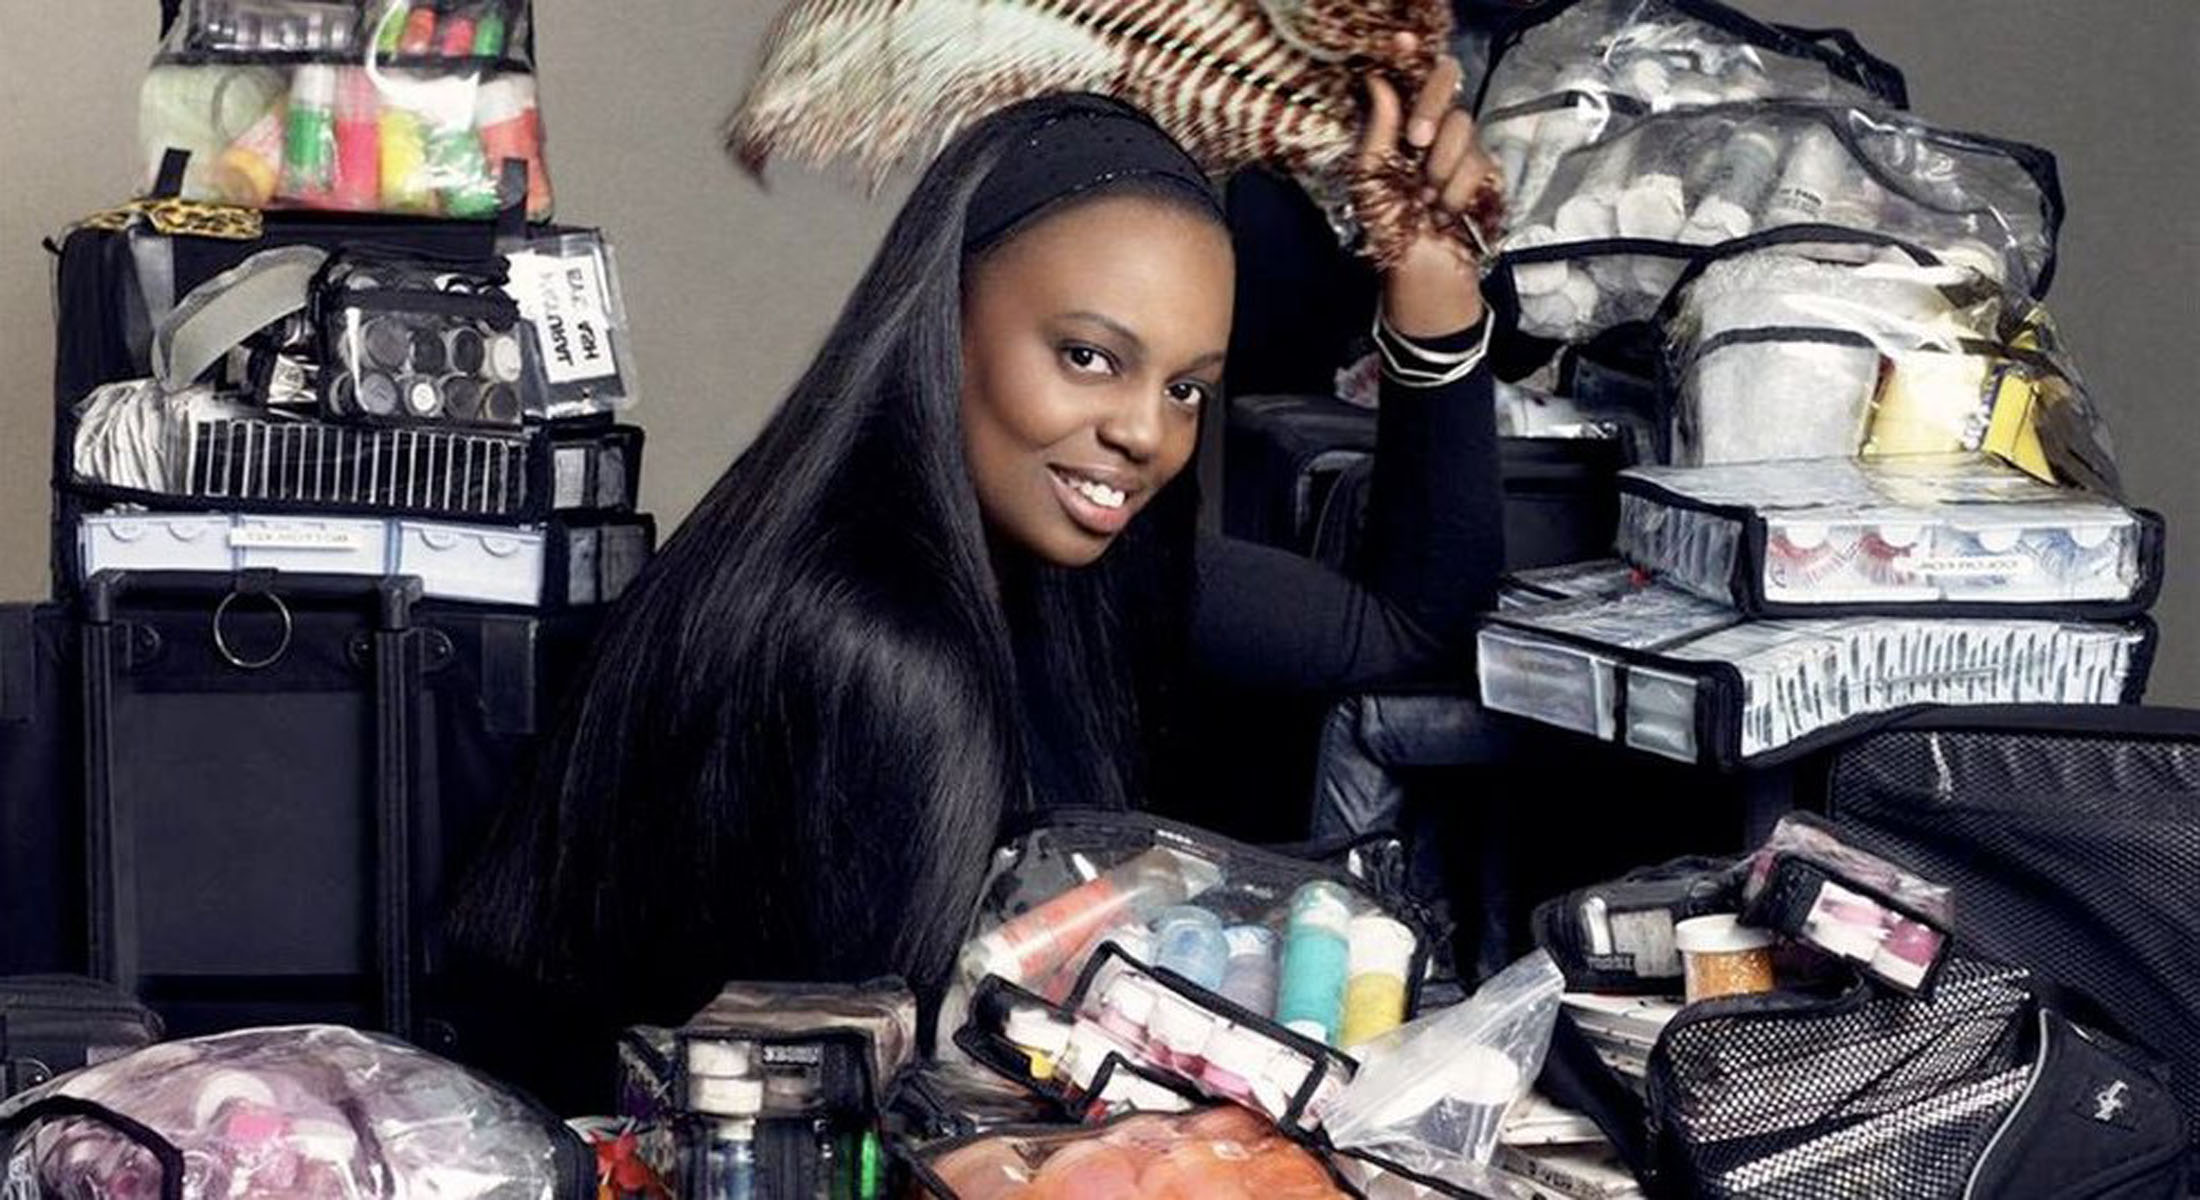 African American Beauty Products, African American Make Up, Black Make Up, Pat McGrath, Buy Black, #BuyBlack, Black Businesses, African American Entrepreneurs, KOLUMN Magazine, KOLUMN, KINDR'D Magazine, KINDR'D, The Five Fifths, Willoughby Avenue